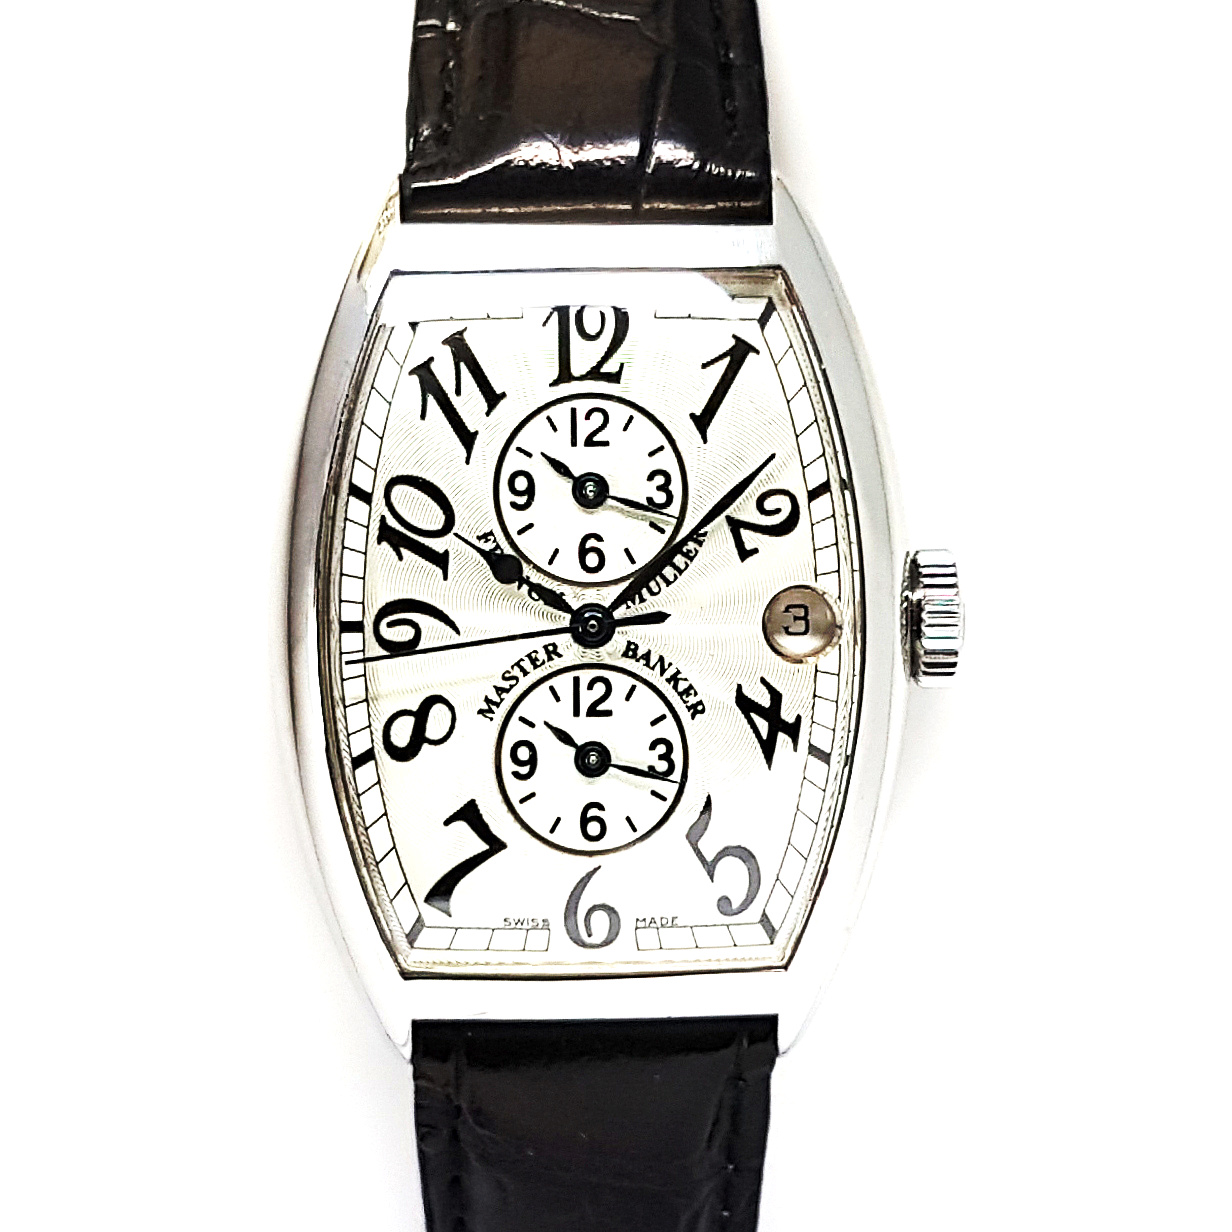 new arrival 806e8 eed7a Franck Muller Master Banker 5850MB Automatic 2 Dual Time Zones Silver Dial  'B&P'